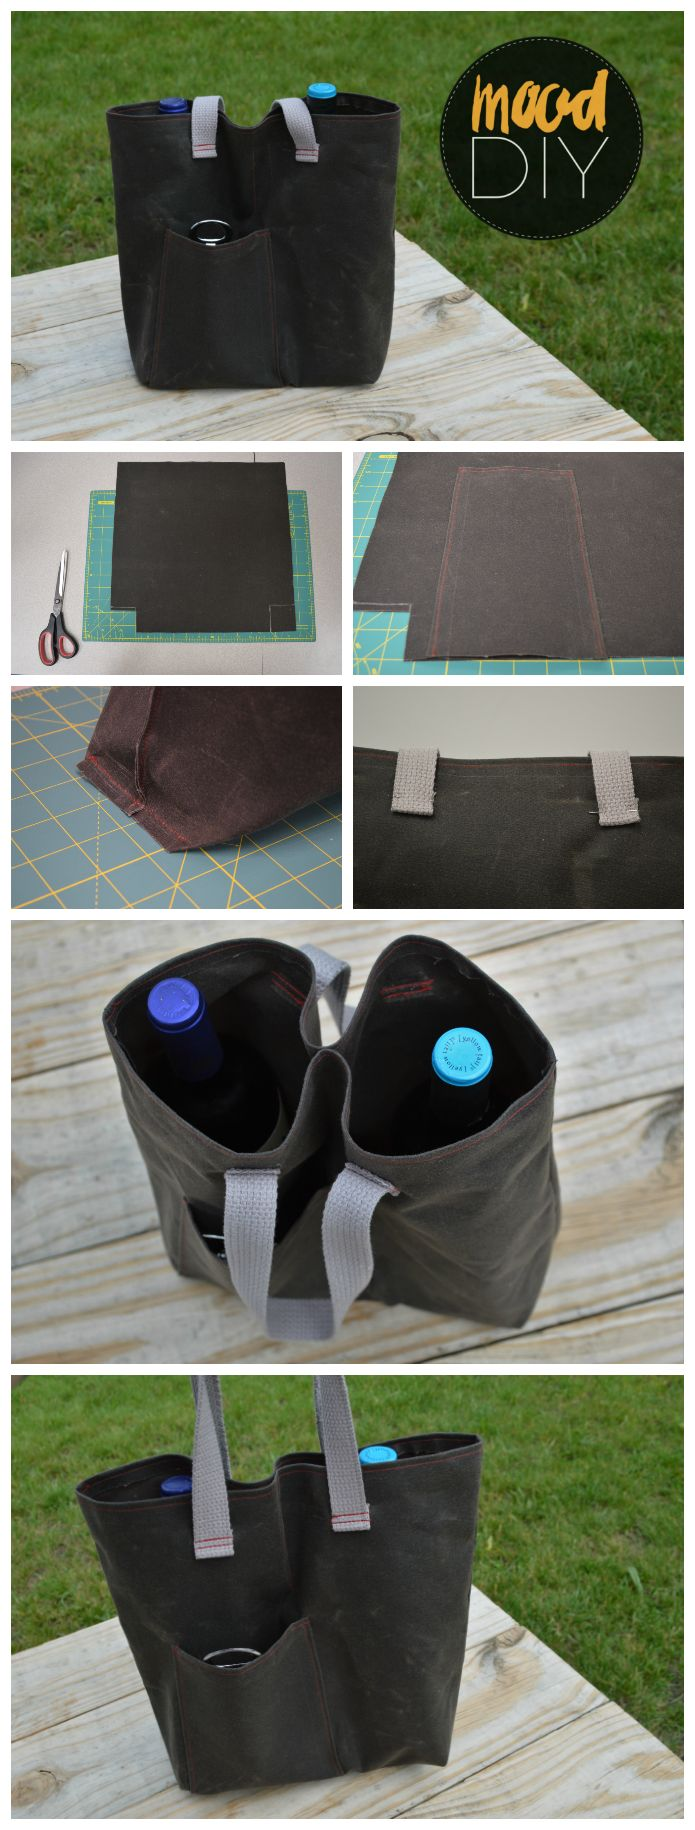 Mood DIY: Waxed Canvas Wine Tote Tutorial | Whether you're going to a holiday cookout or a rustic bridal shower this summer, wine is always a wonderful host/hostess gift.